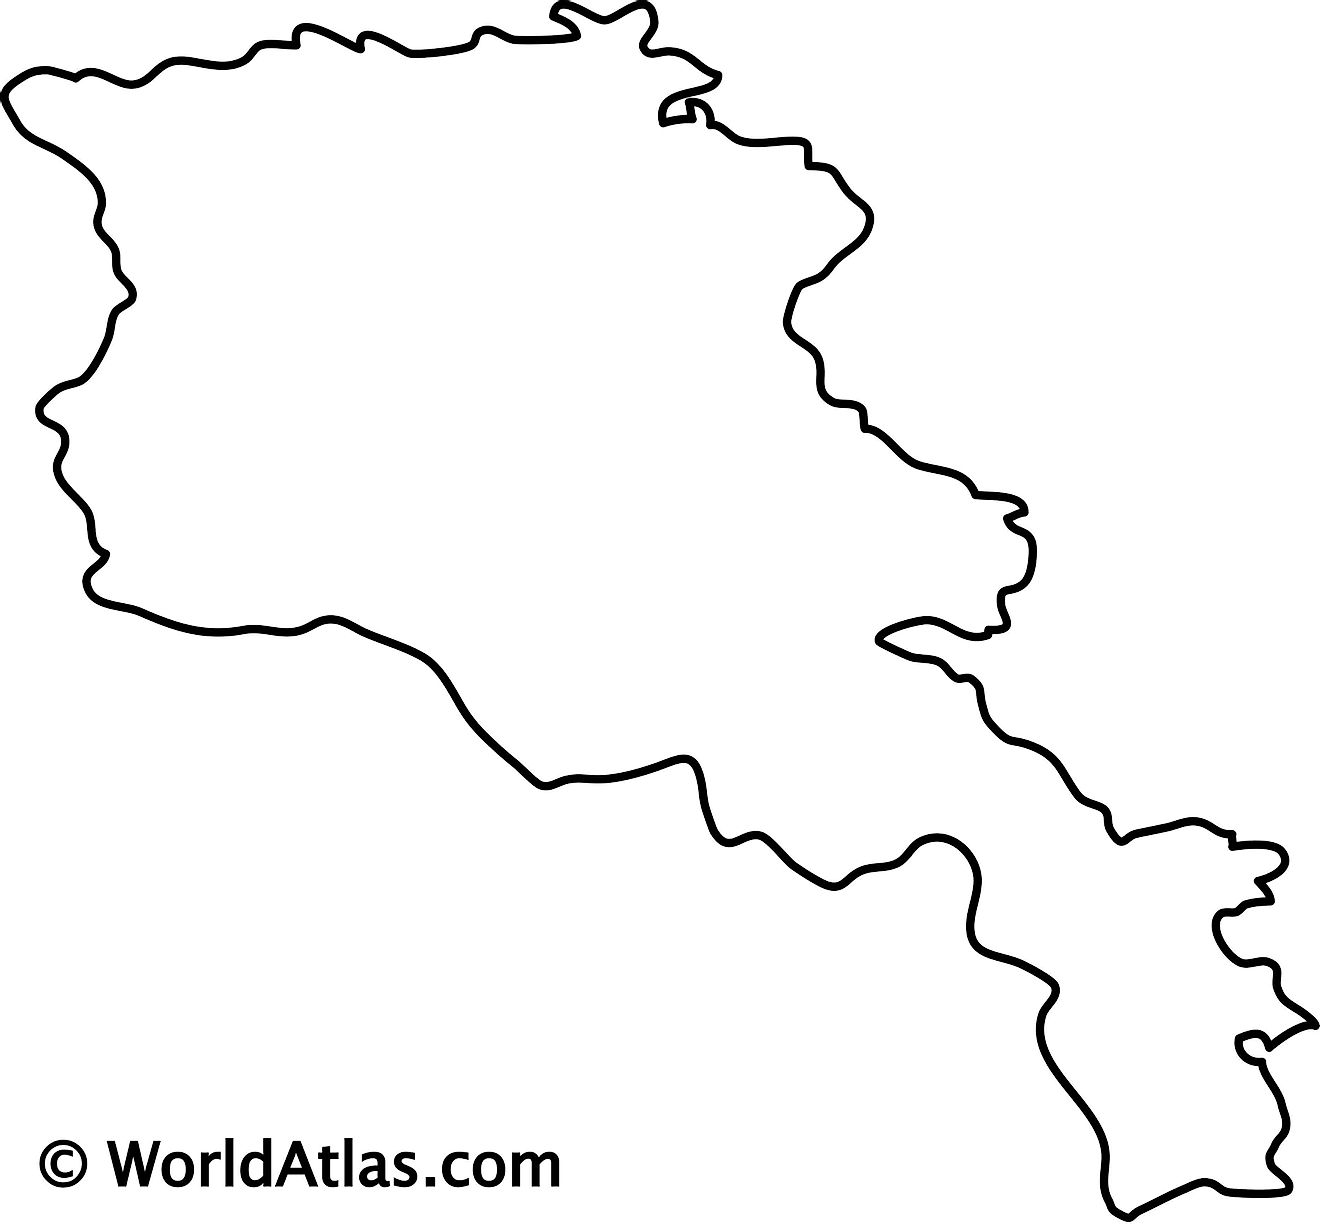 Blank Outline Map of Armenia